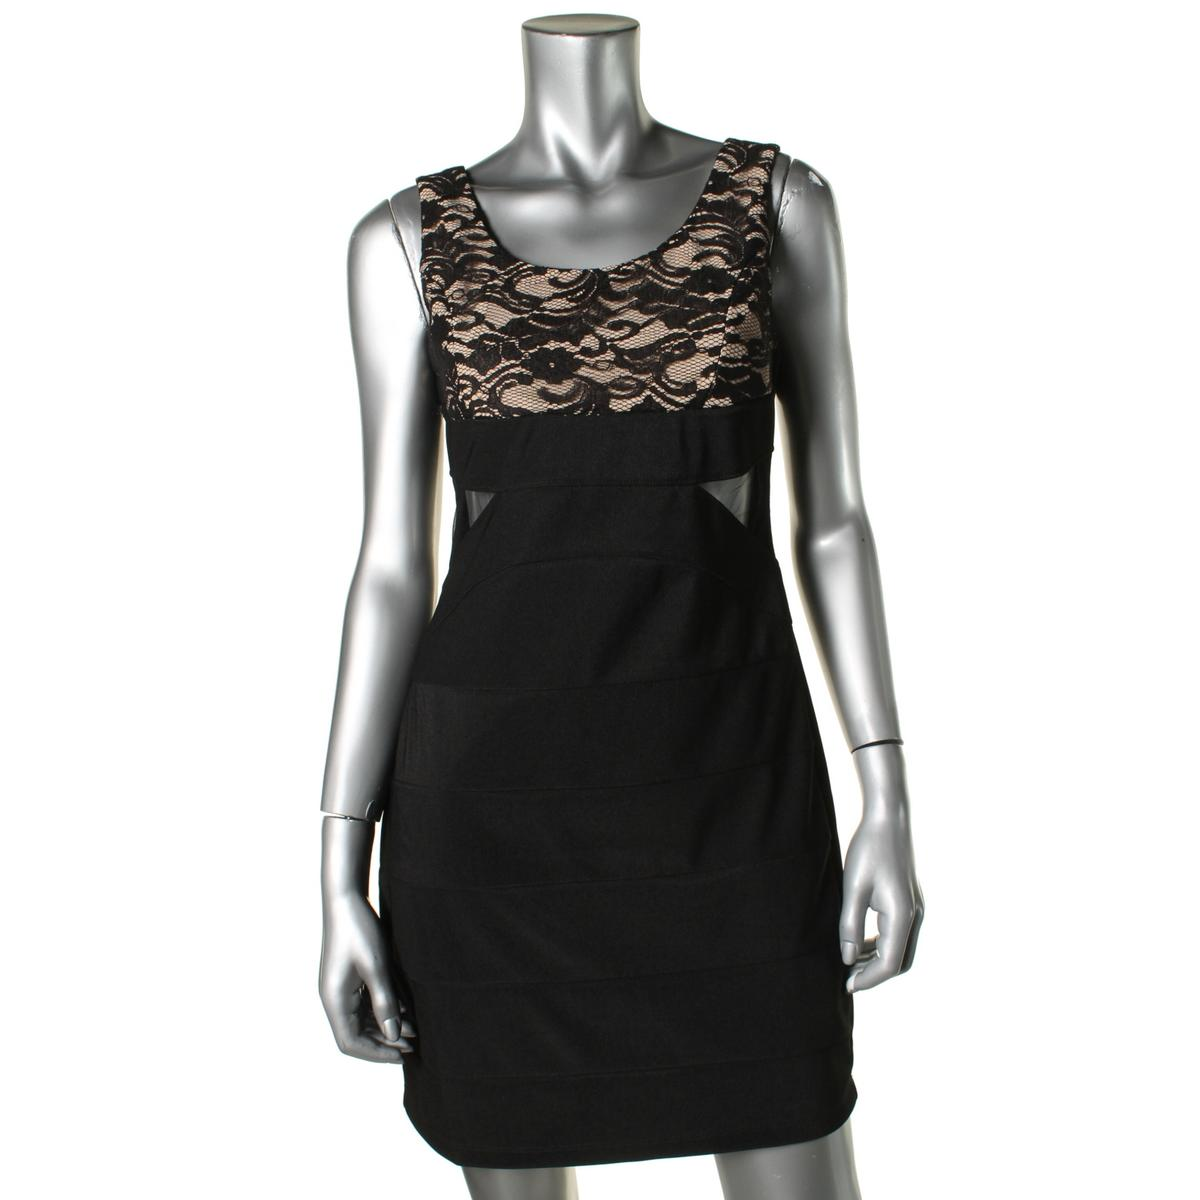 Ruby Rox Womens Lace Sleeveless Cocktail Dress